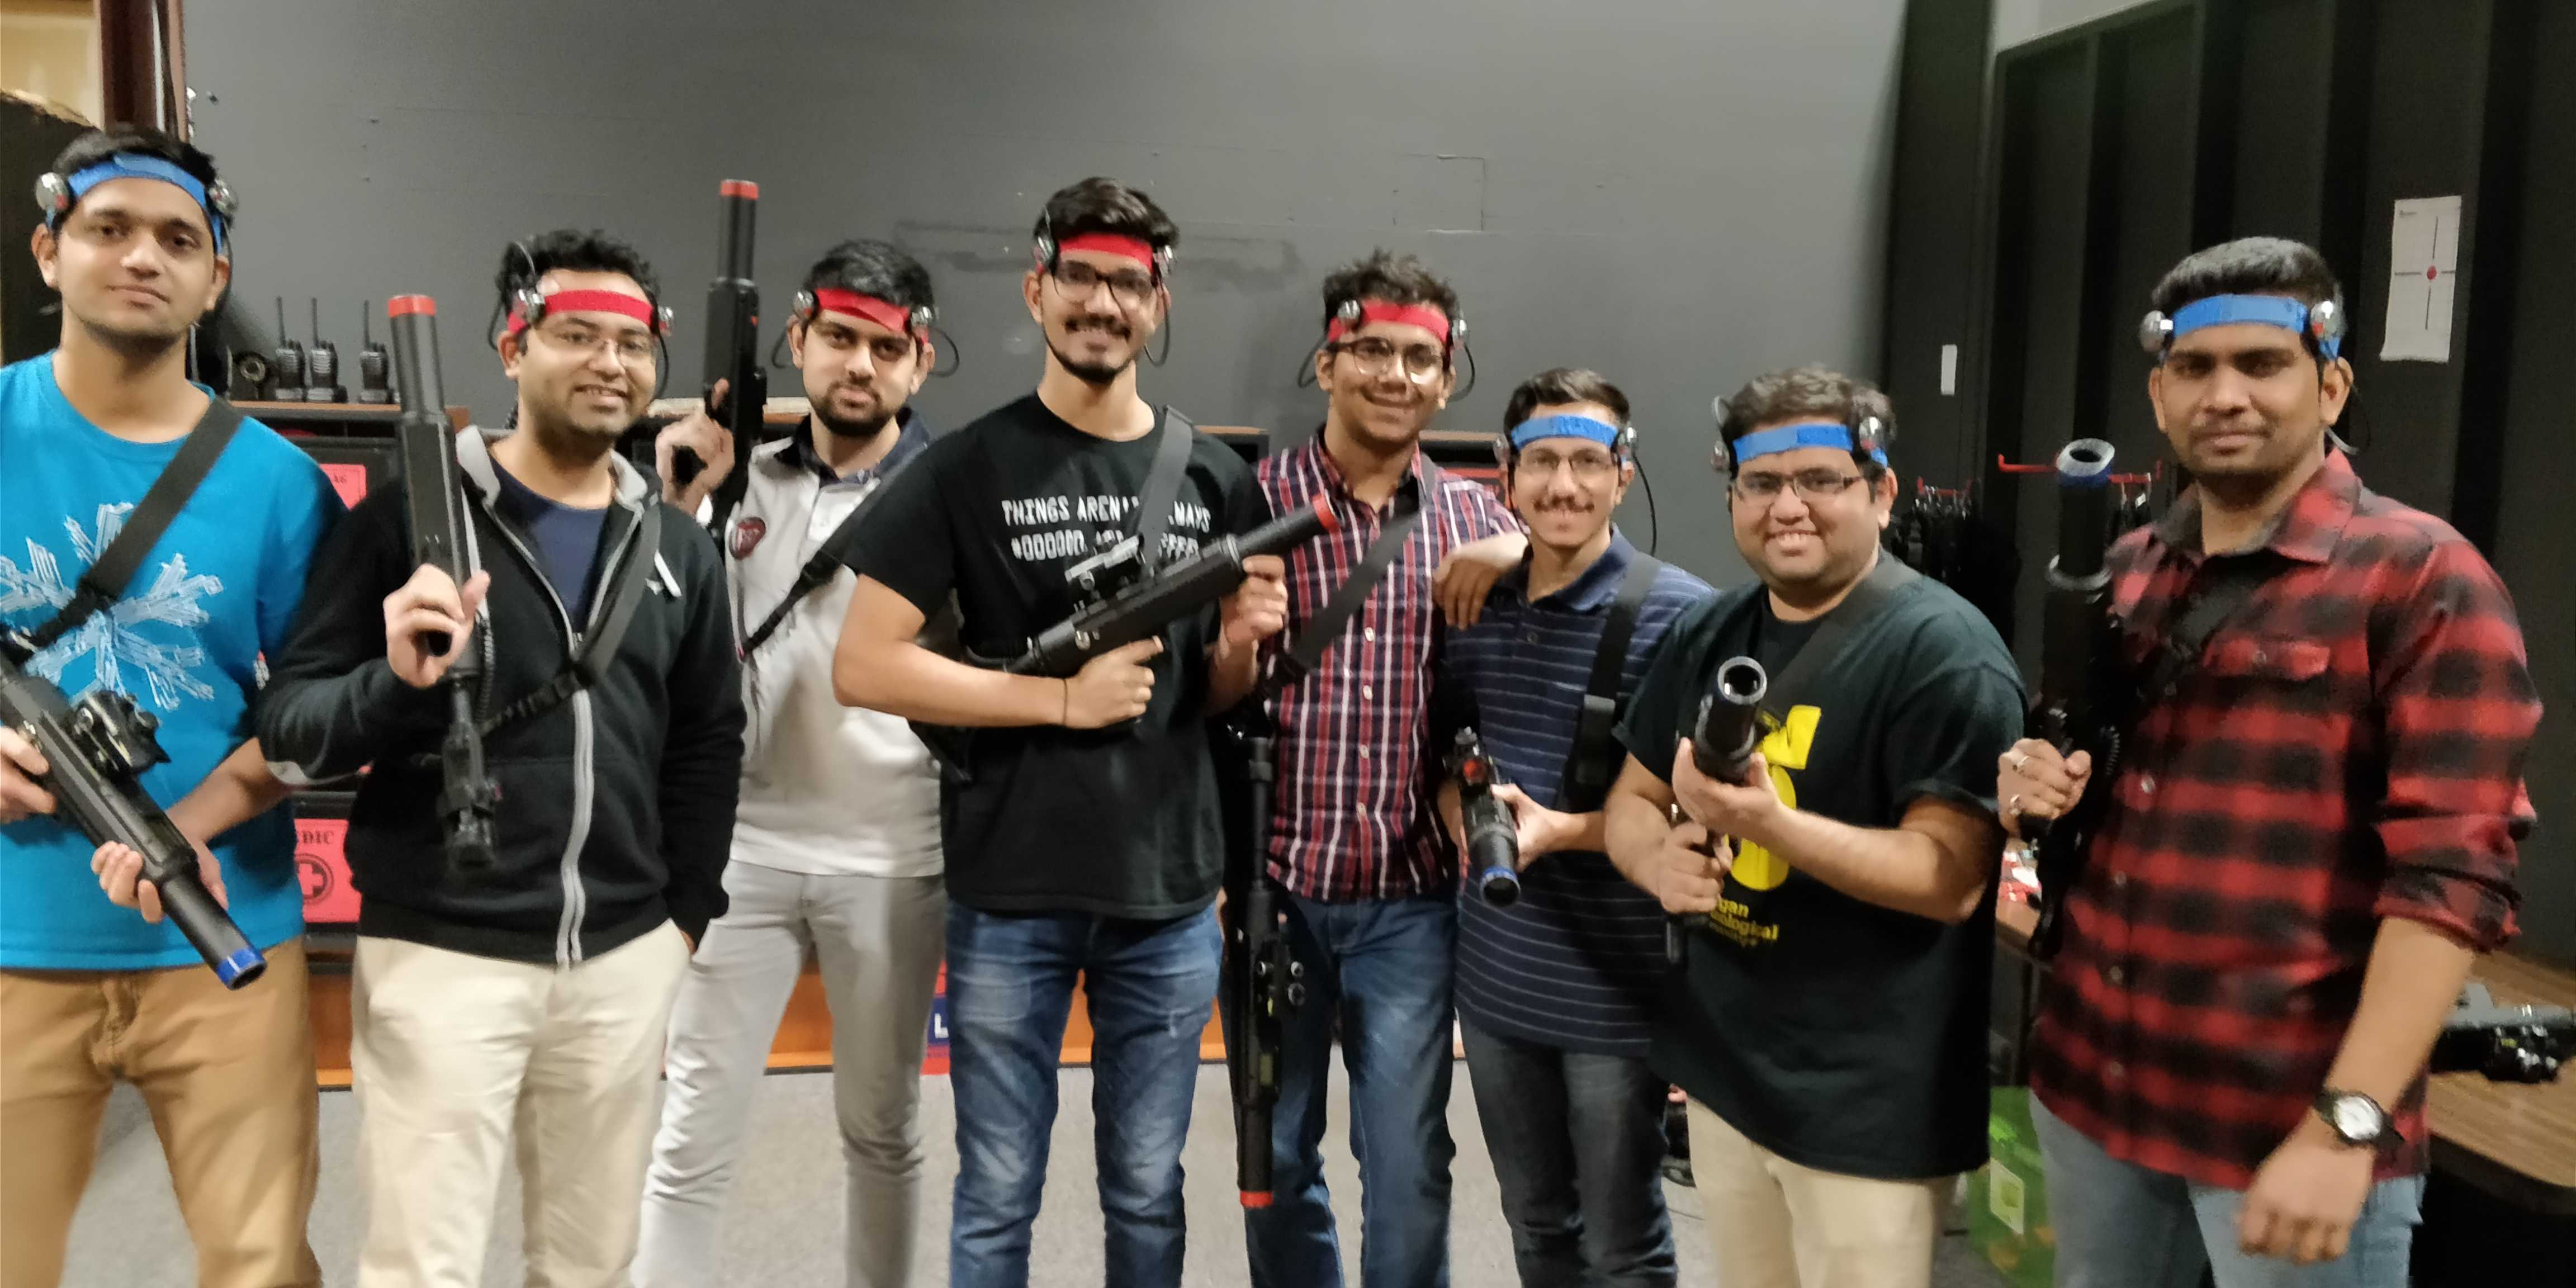 All about the fun: Respawn Laser Tag